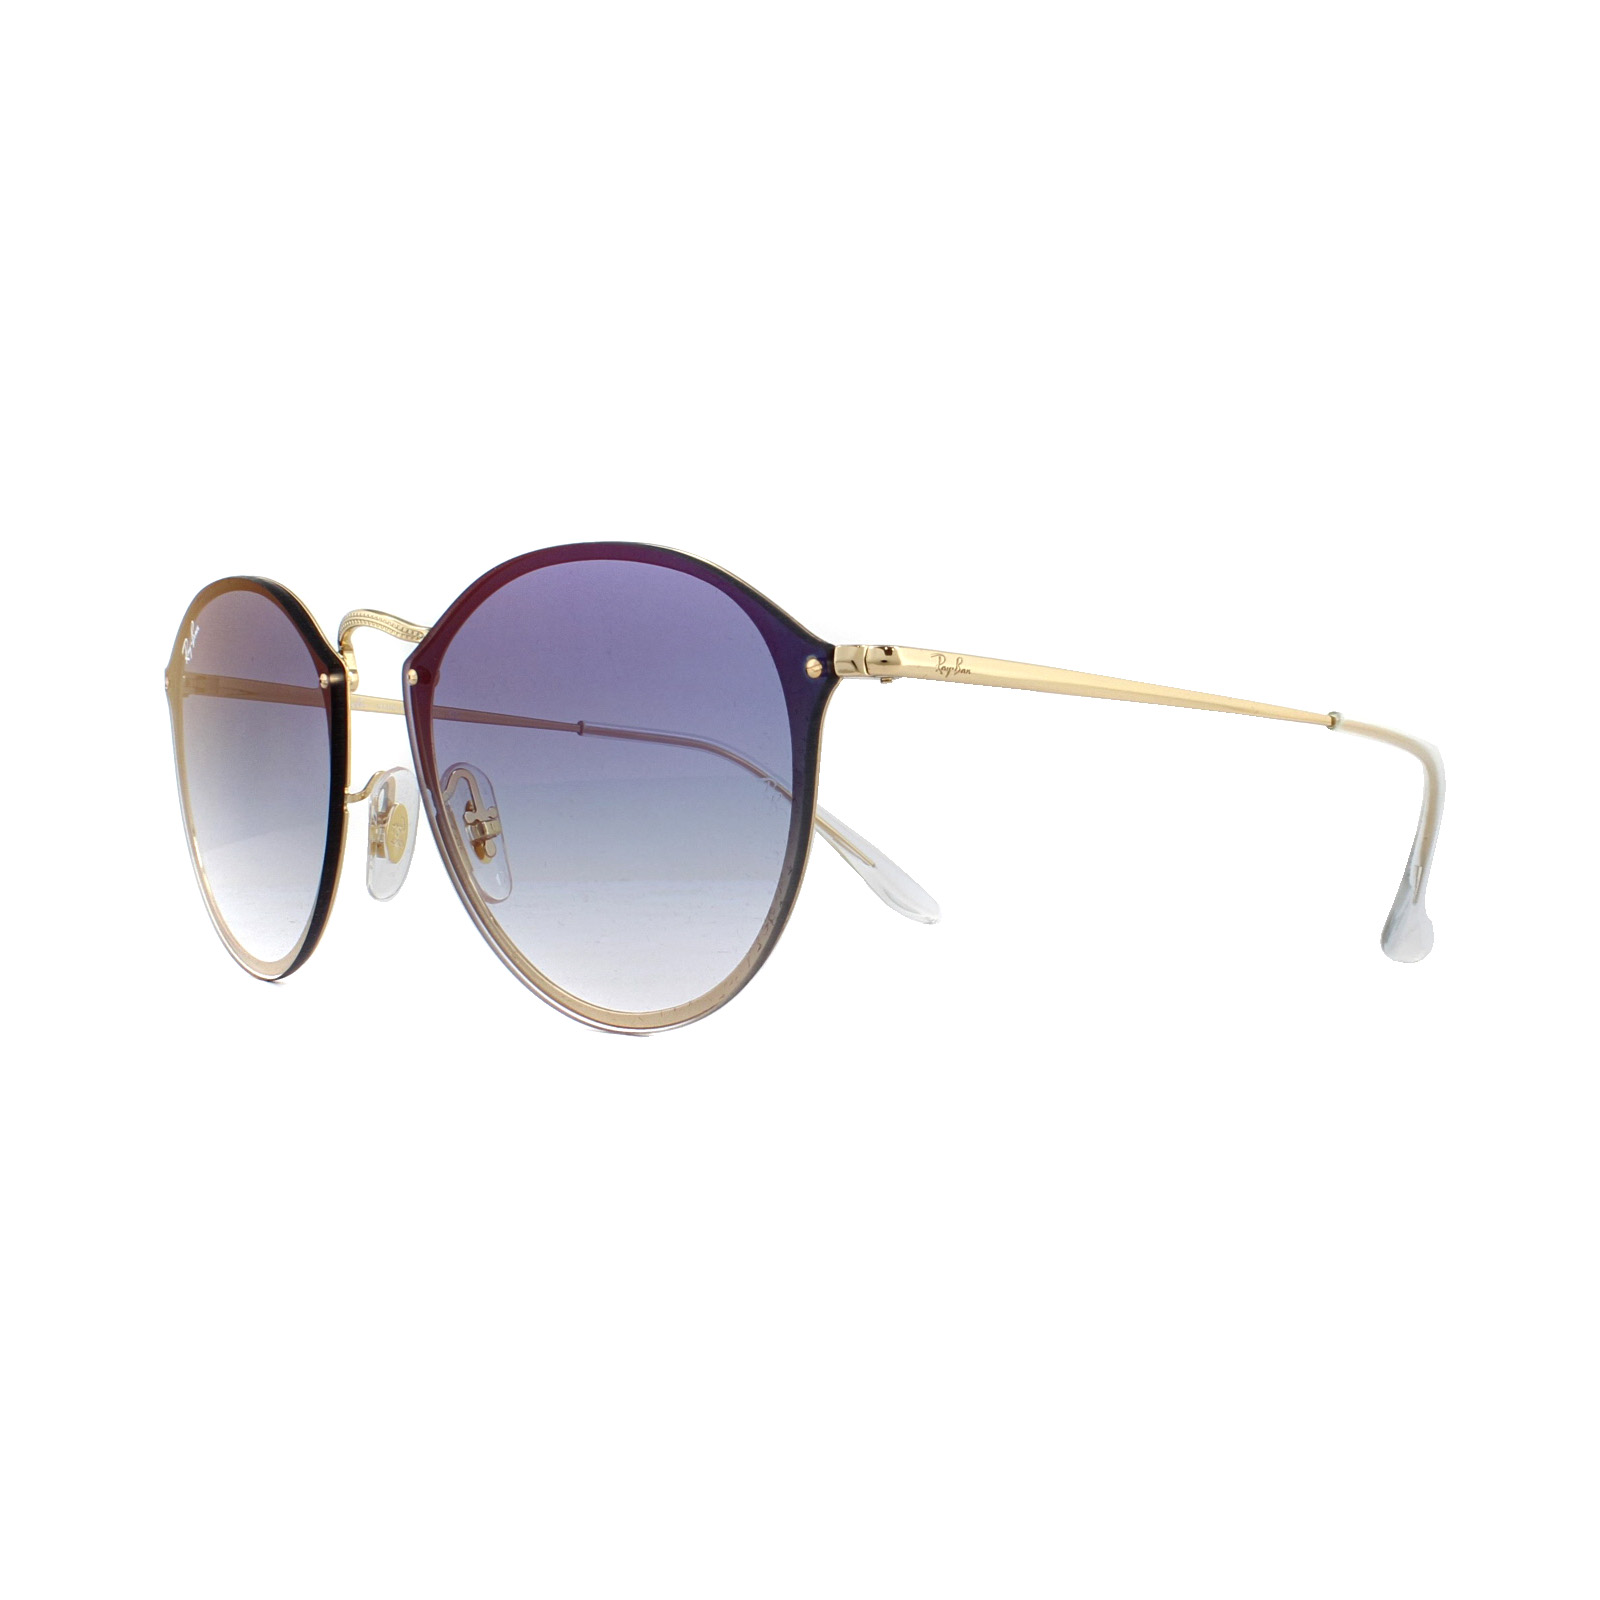 7efd7e8a26c Sentinel Ray-Ban Sunglasses Blaze Round RB3574N 001 X0 Gold Blue Gradient  Red Mirrored